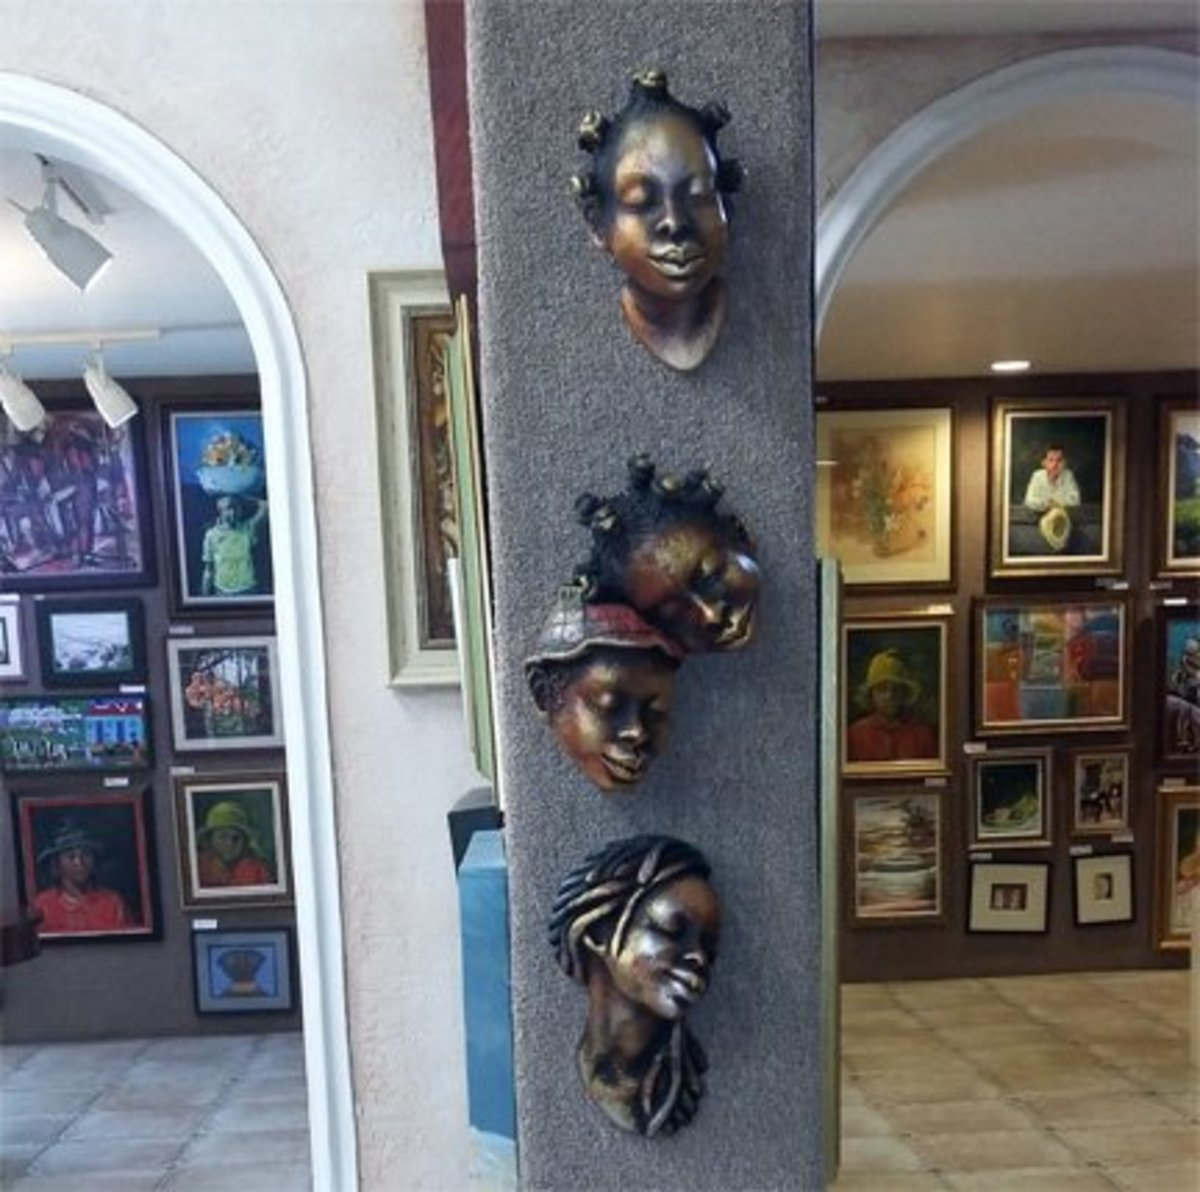 Head sculptures from an art gallery—a potential gift choice.